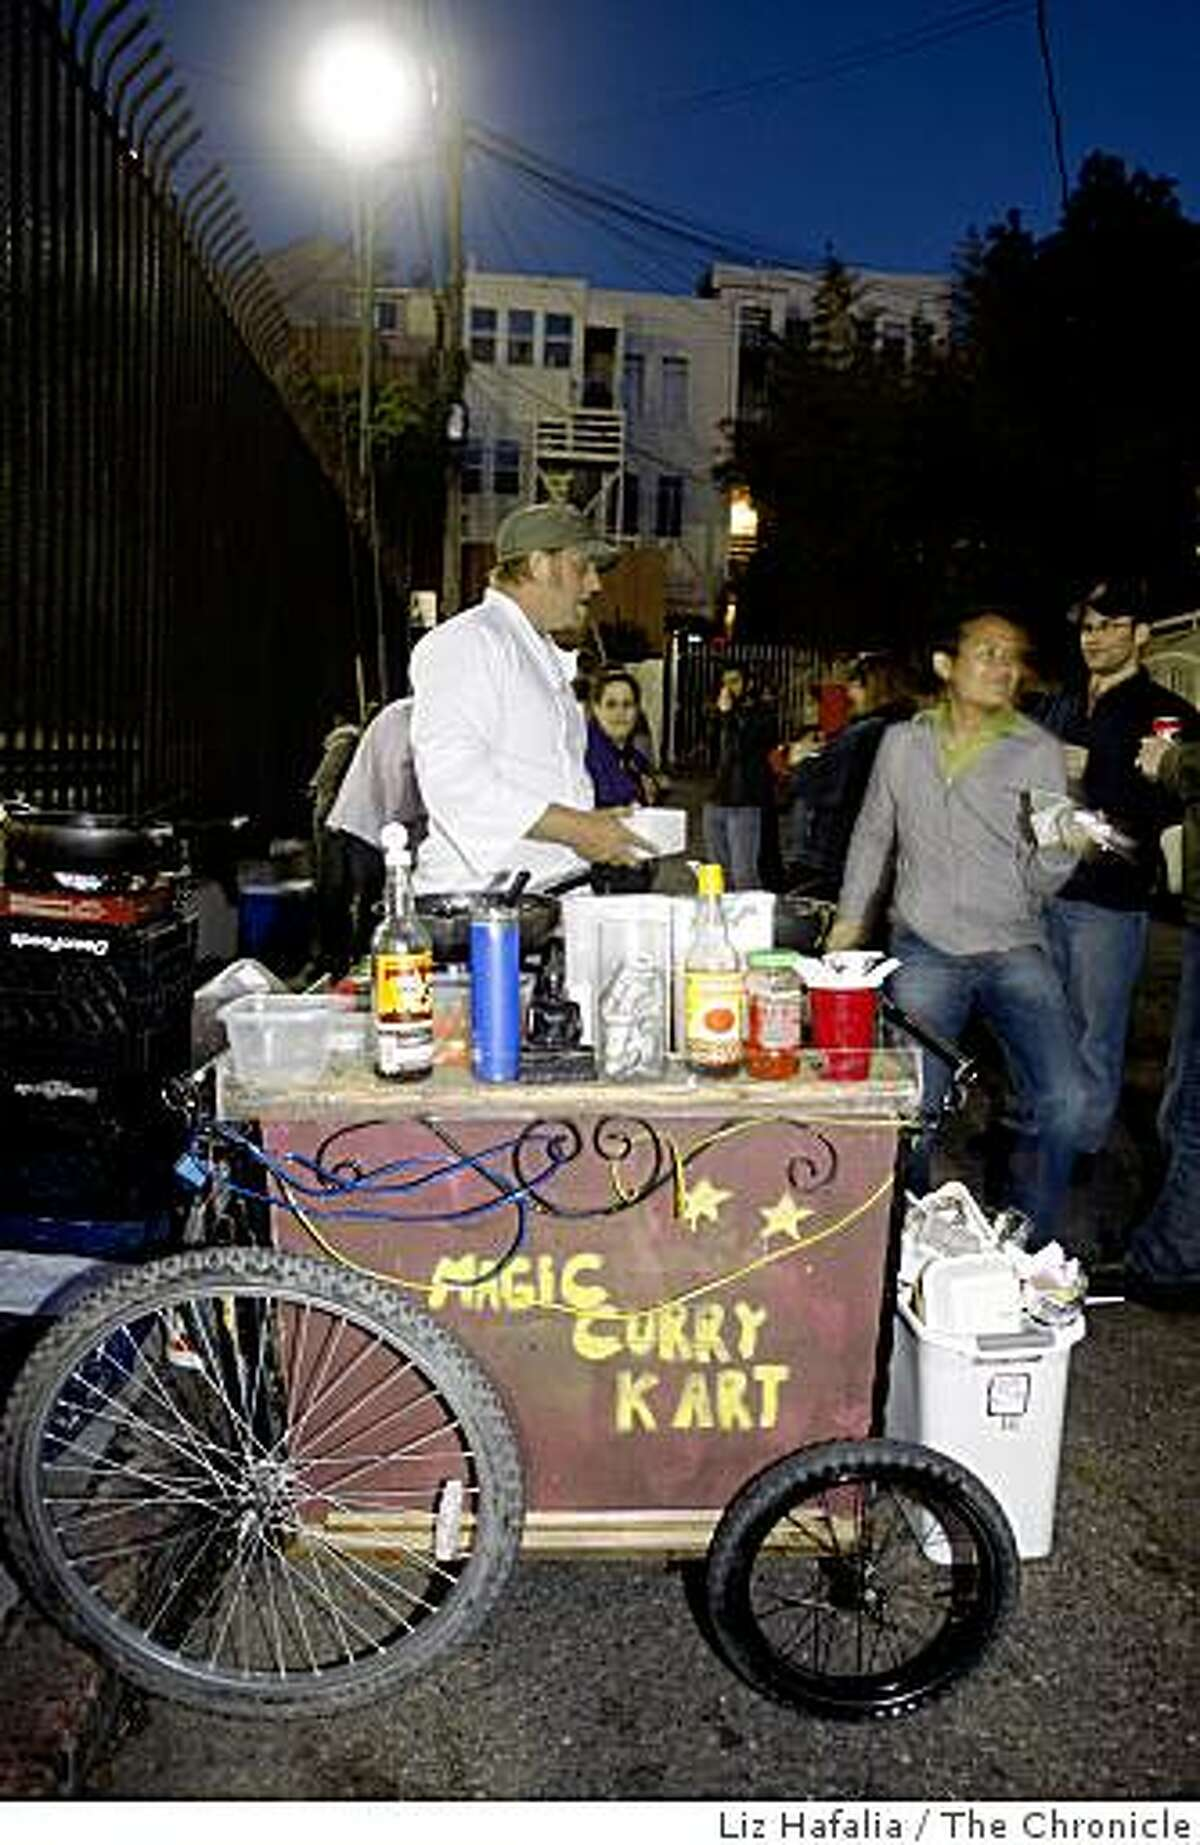 The Magic Curry man and his cart in the mission district in San Francisco, Calif., on Friday, May 15, 2009.